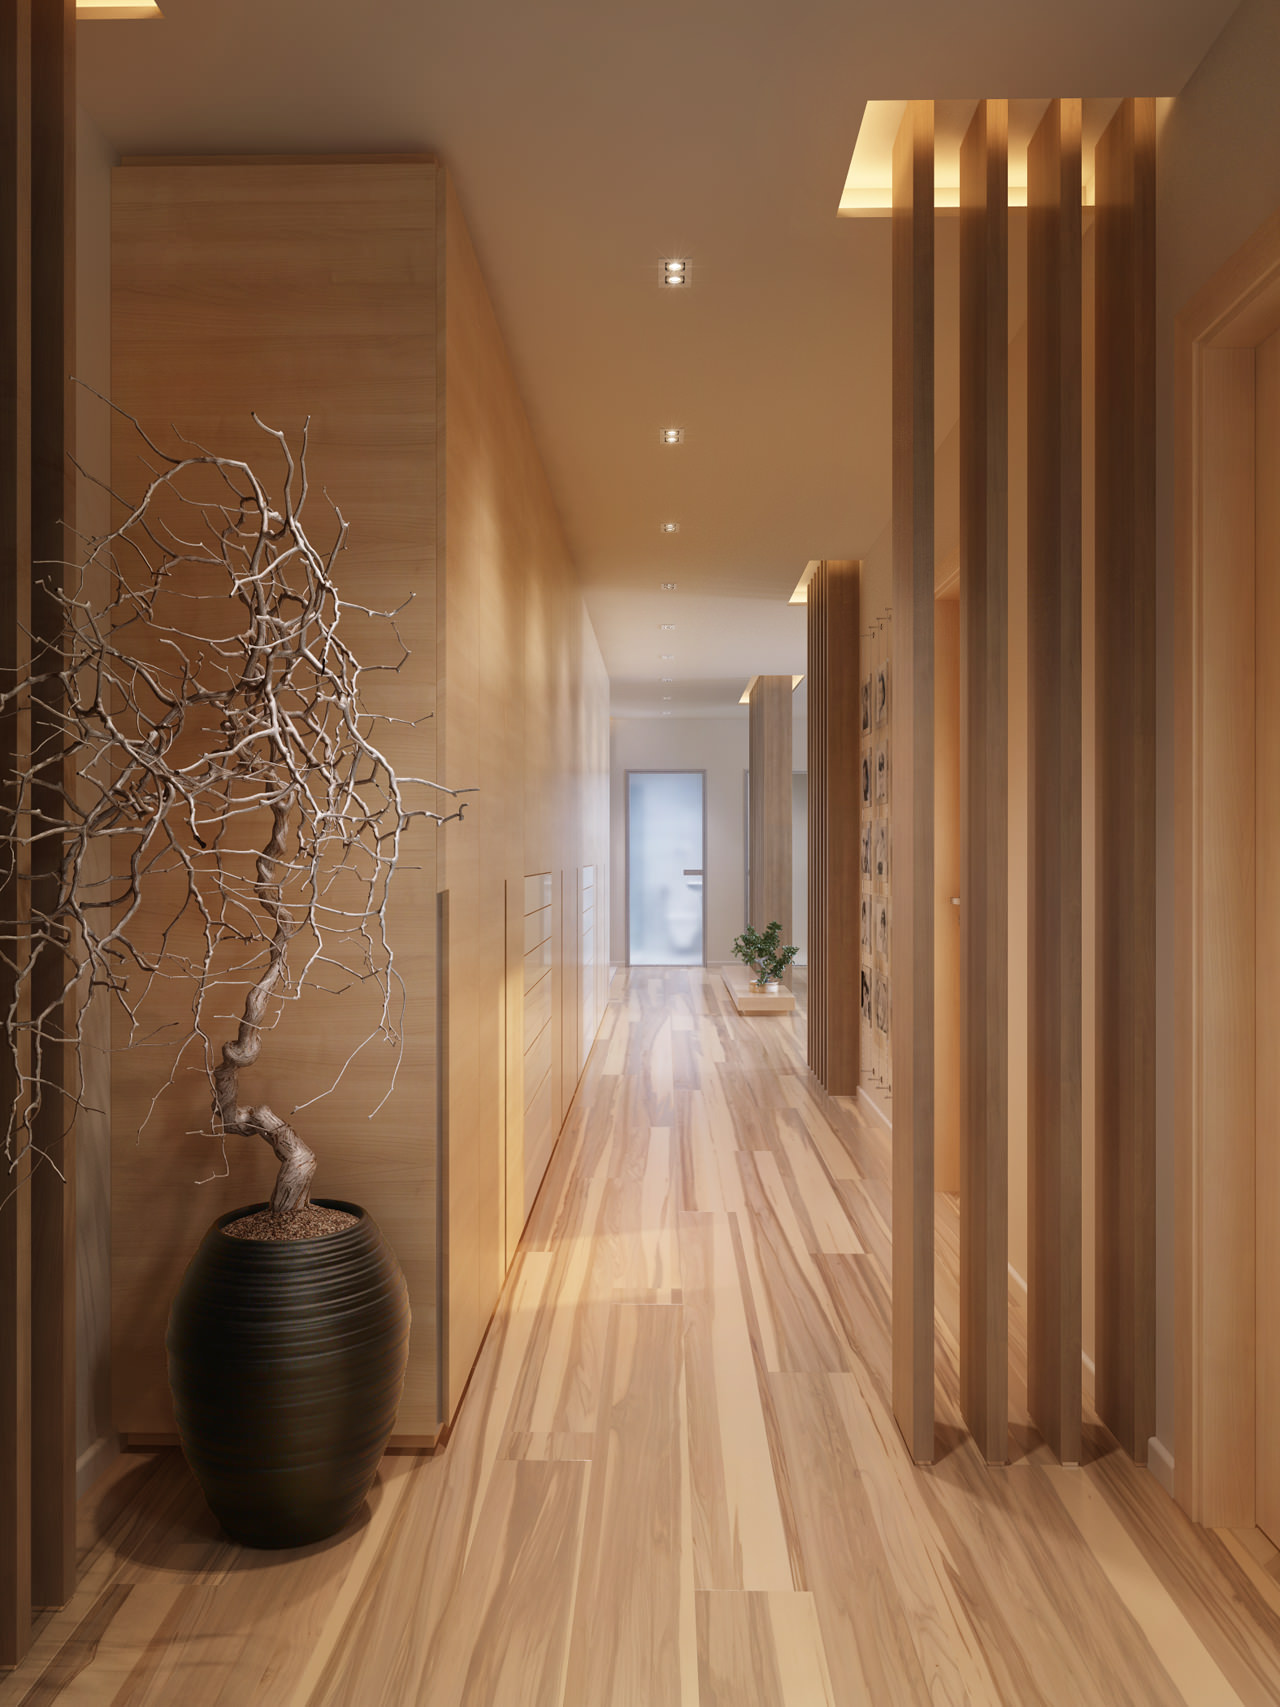 Hallway decor interior design ideas for Home design ideas hallway